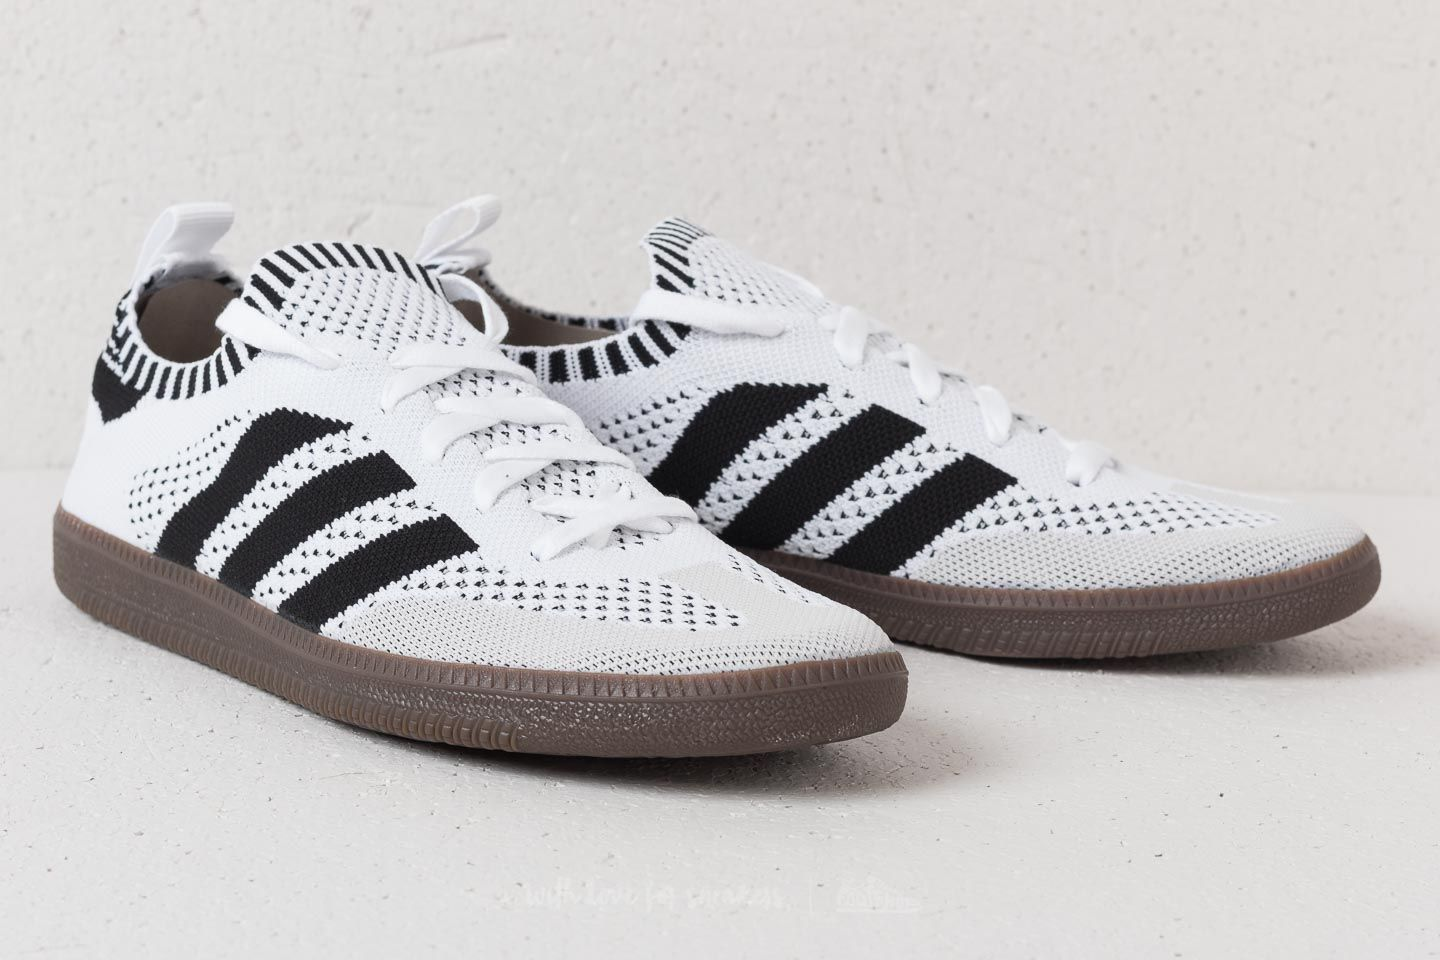 37b5fd6e62b ... schuh mw0cbww898f weiß männer originals 5fa90 49c9c  order adidas samba  primeknit sock ftw white core black blue bird at a great price 02a81